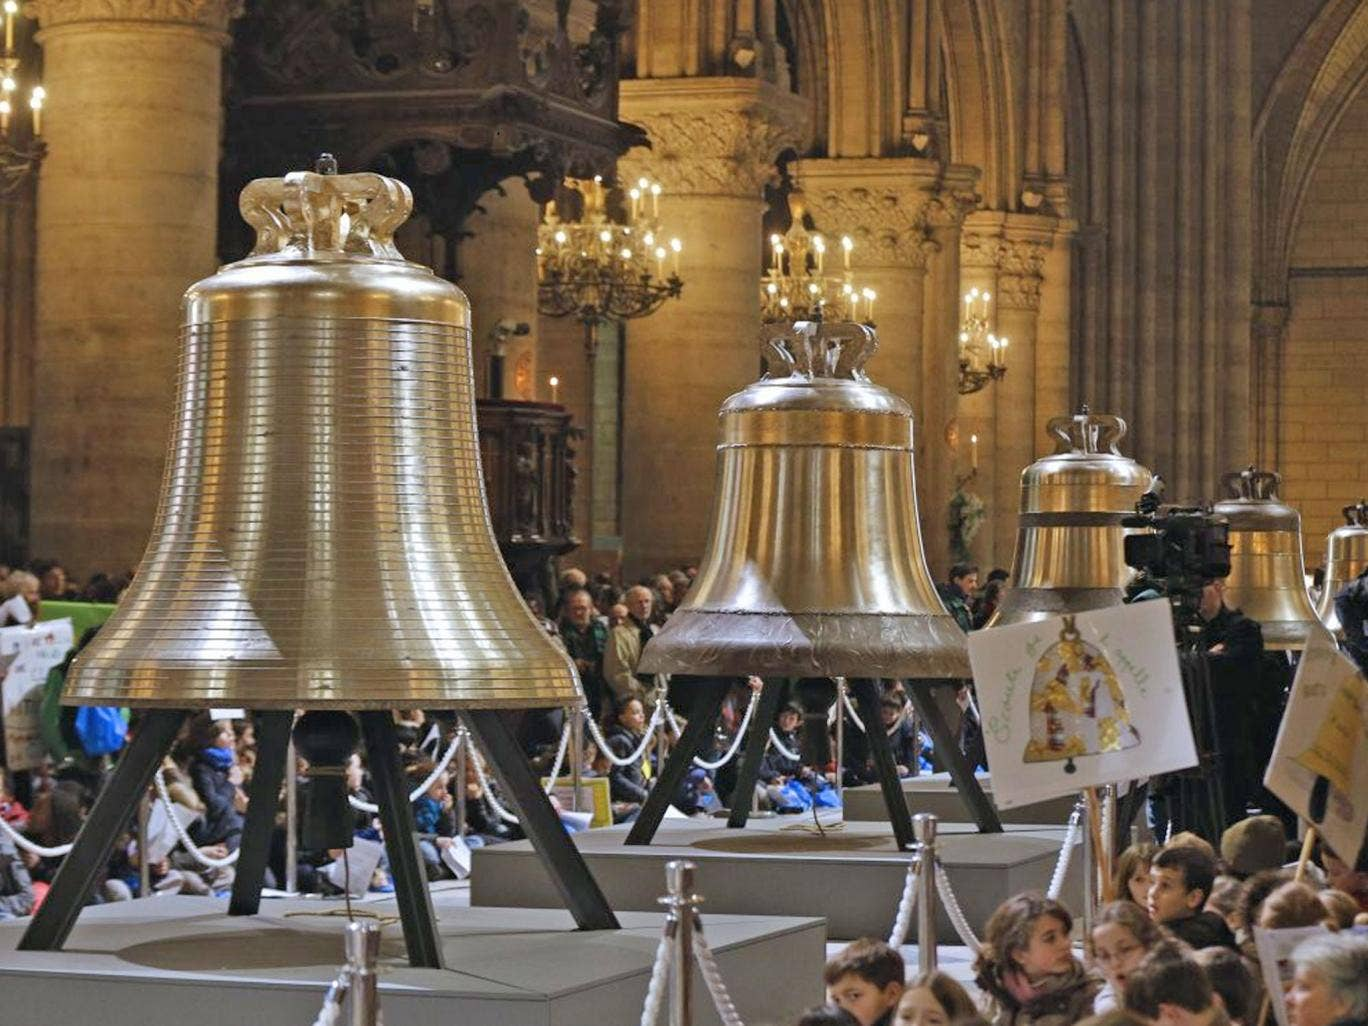 People gather around the new bells of Notre-Dame de Paris Cathedral during their blessing mass